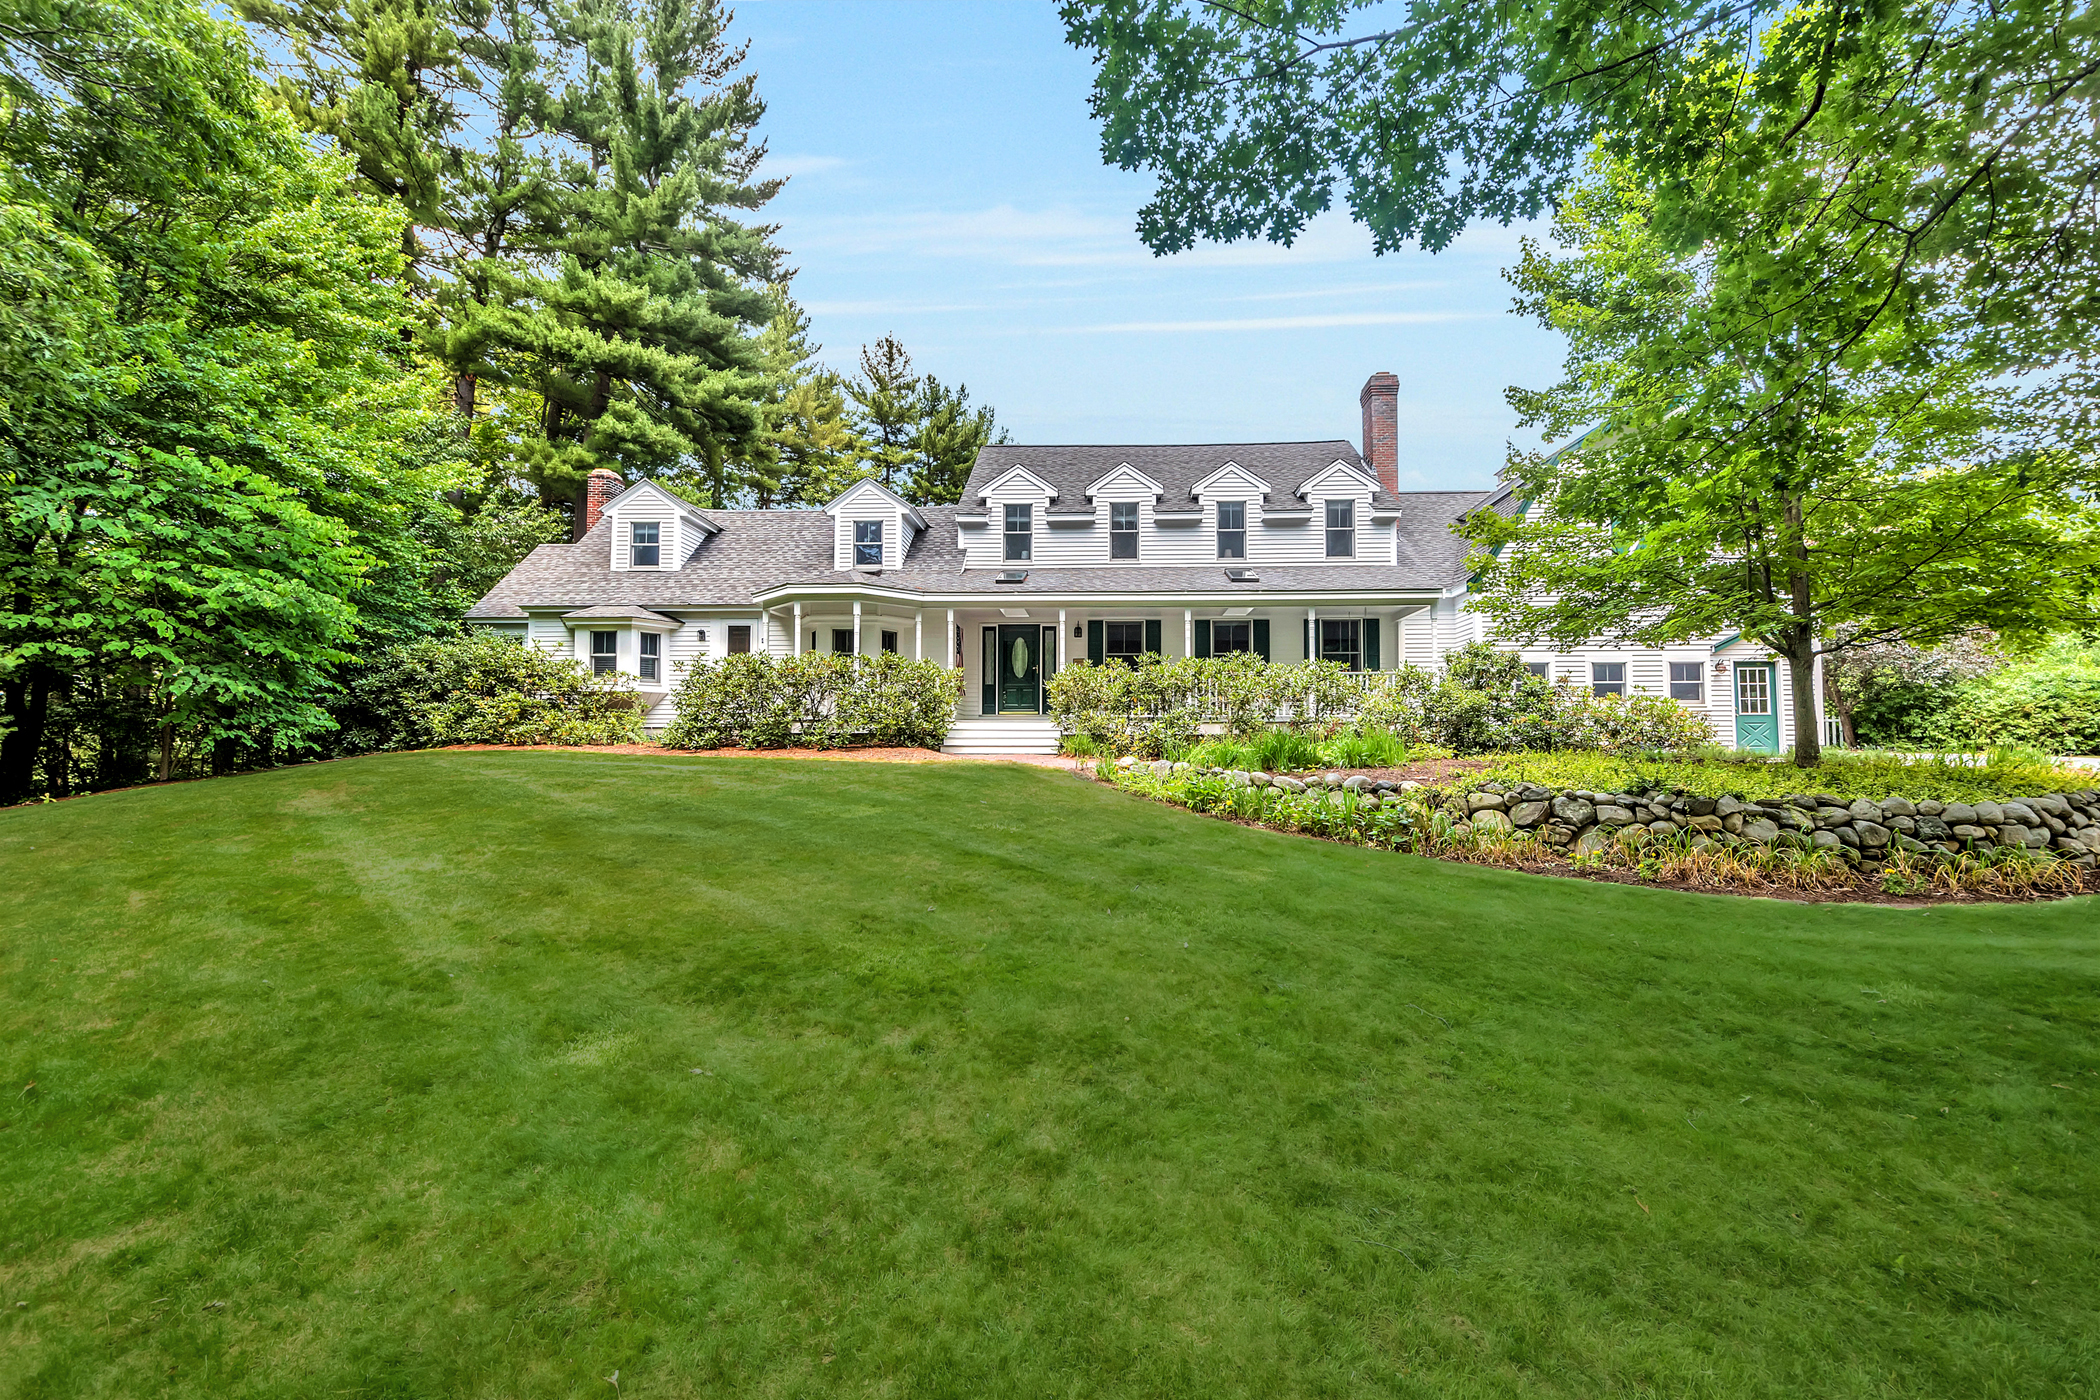 Maison unifamiliale pour l Vente à Sprawling Colonial 42 Pond St Dunstable, Massachusetts, 01827 États-Unis